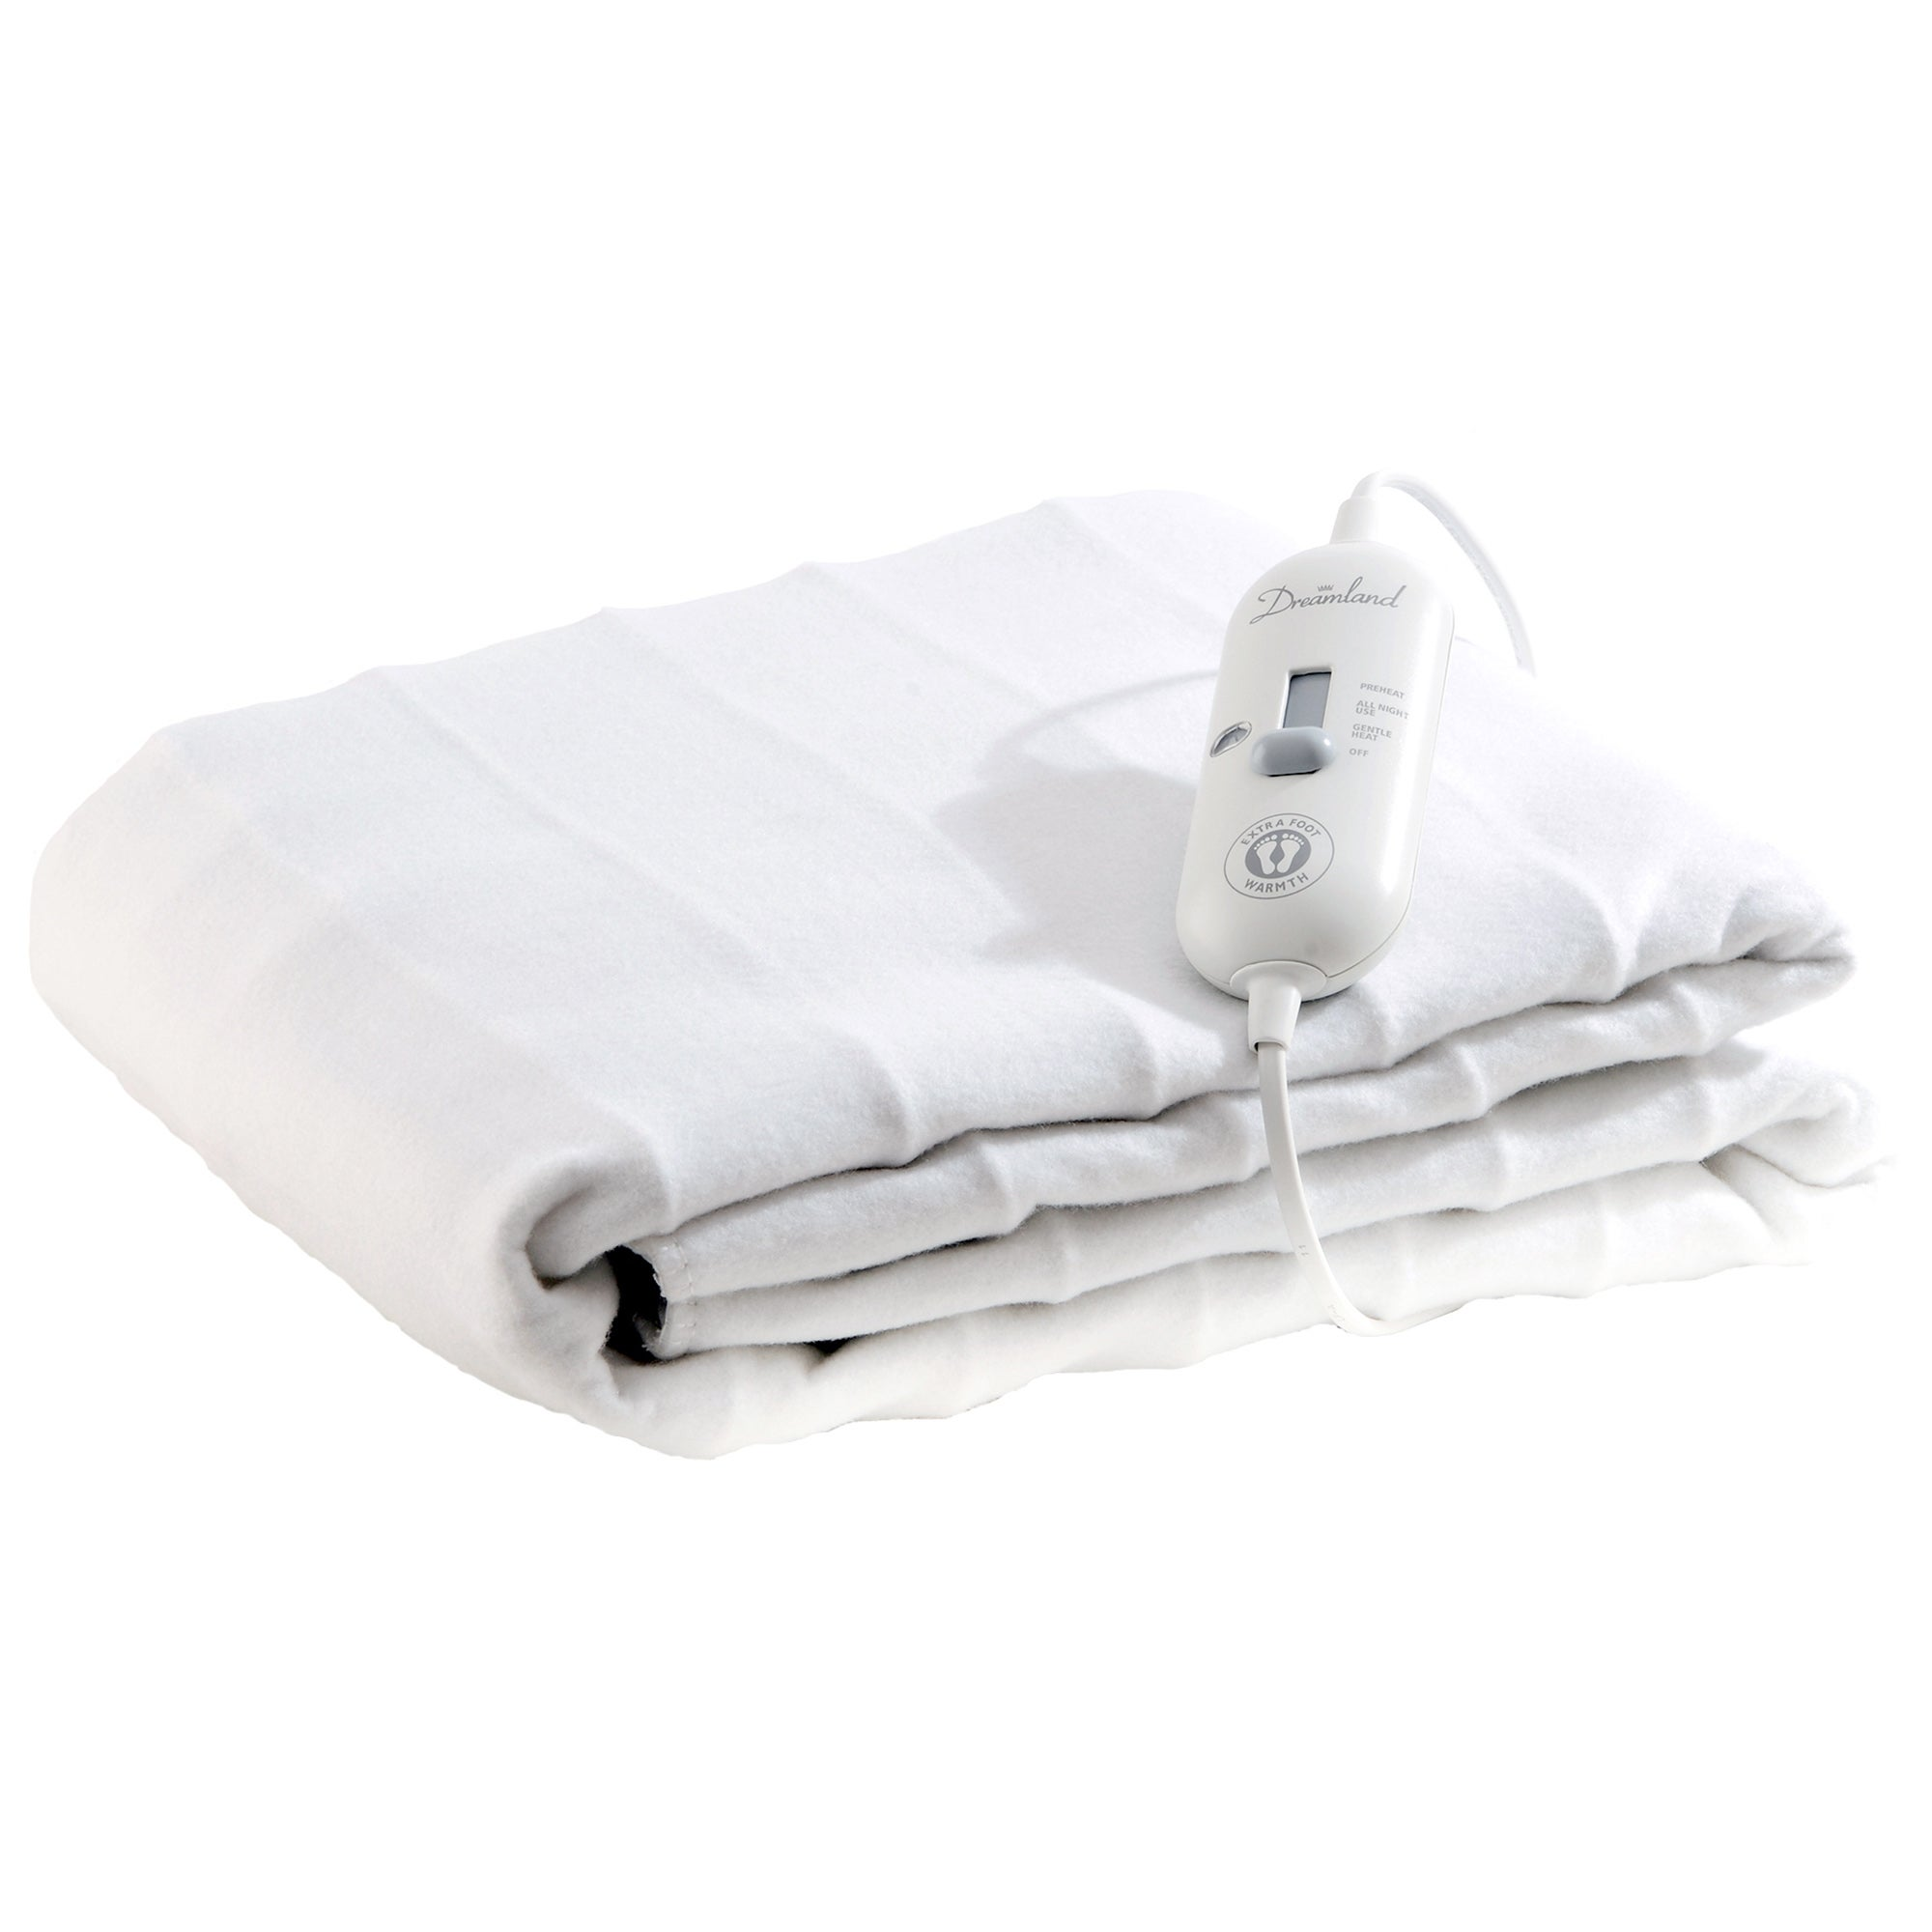 Dreamland Cosy Toes Electric Blanket